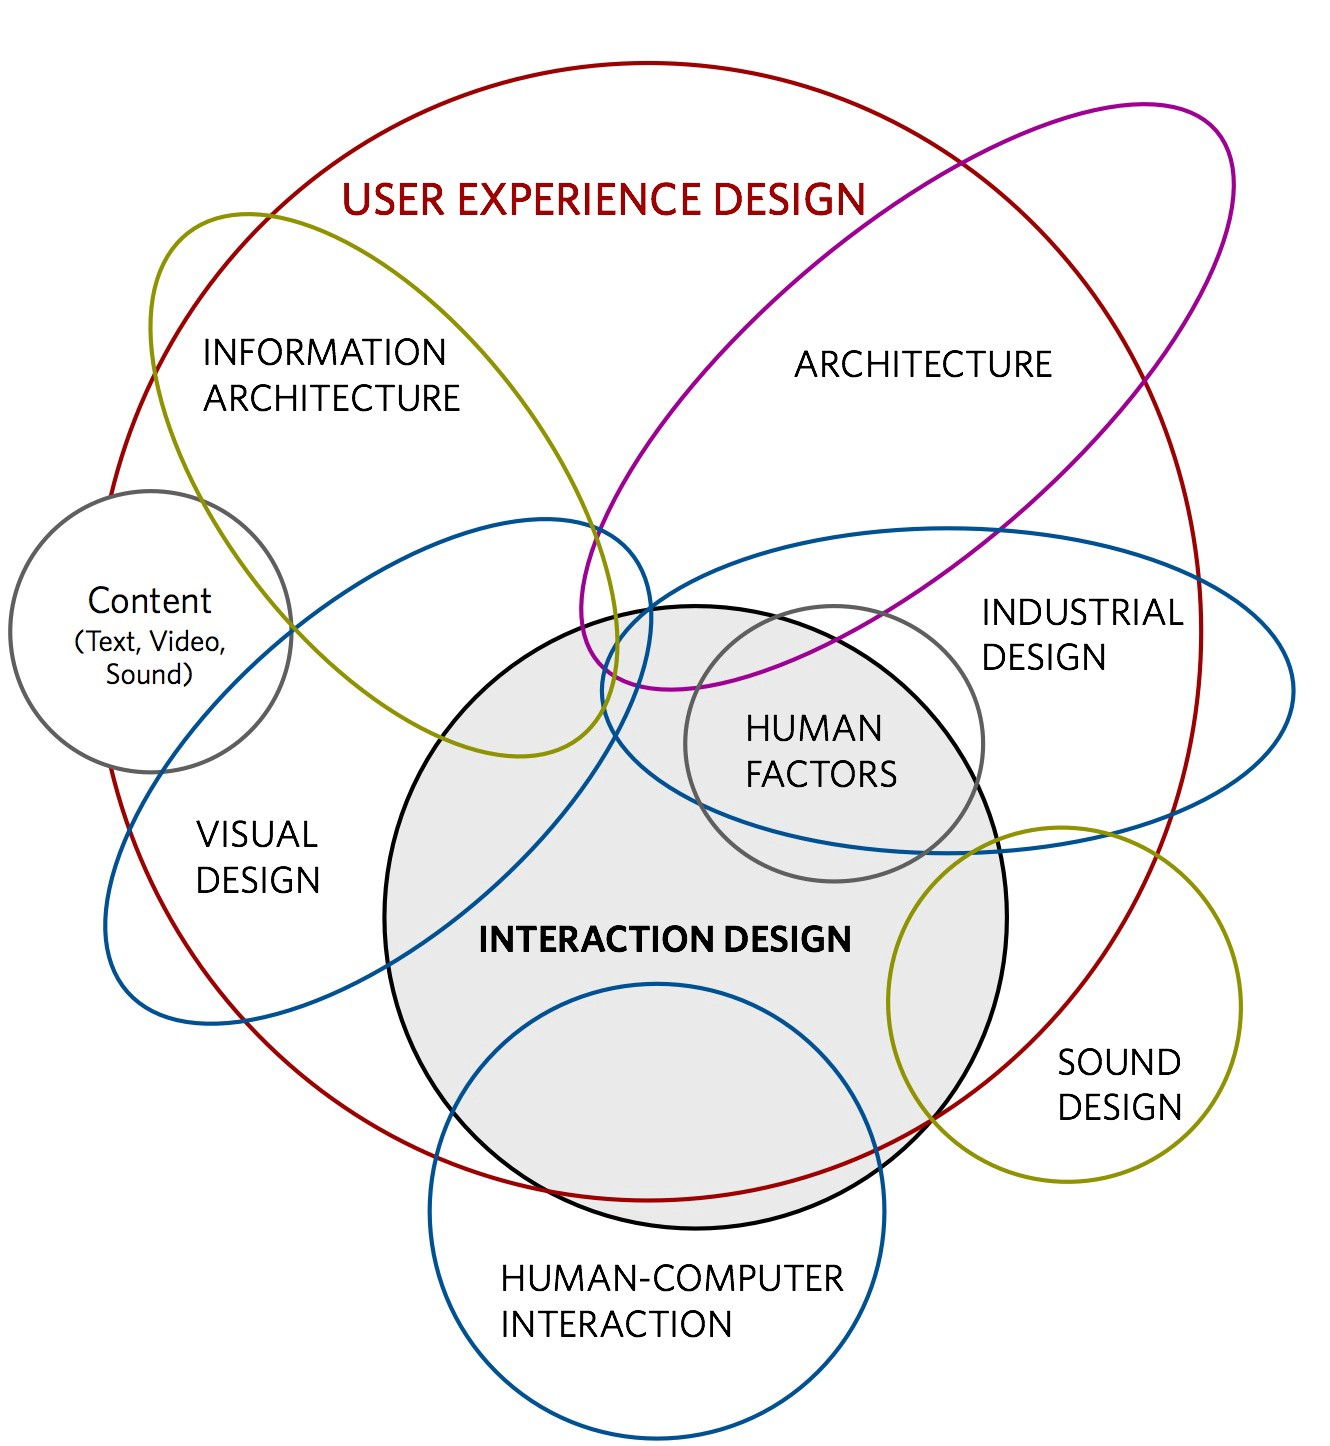 10 Steps To Interaction Design Ixd By Sohaj Singh Brar Ux Collective